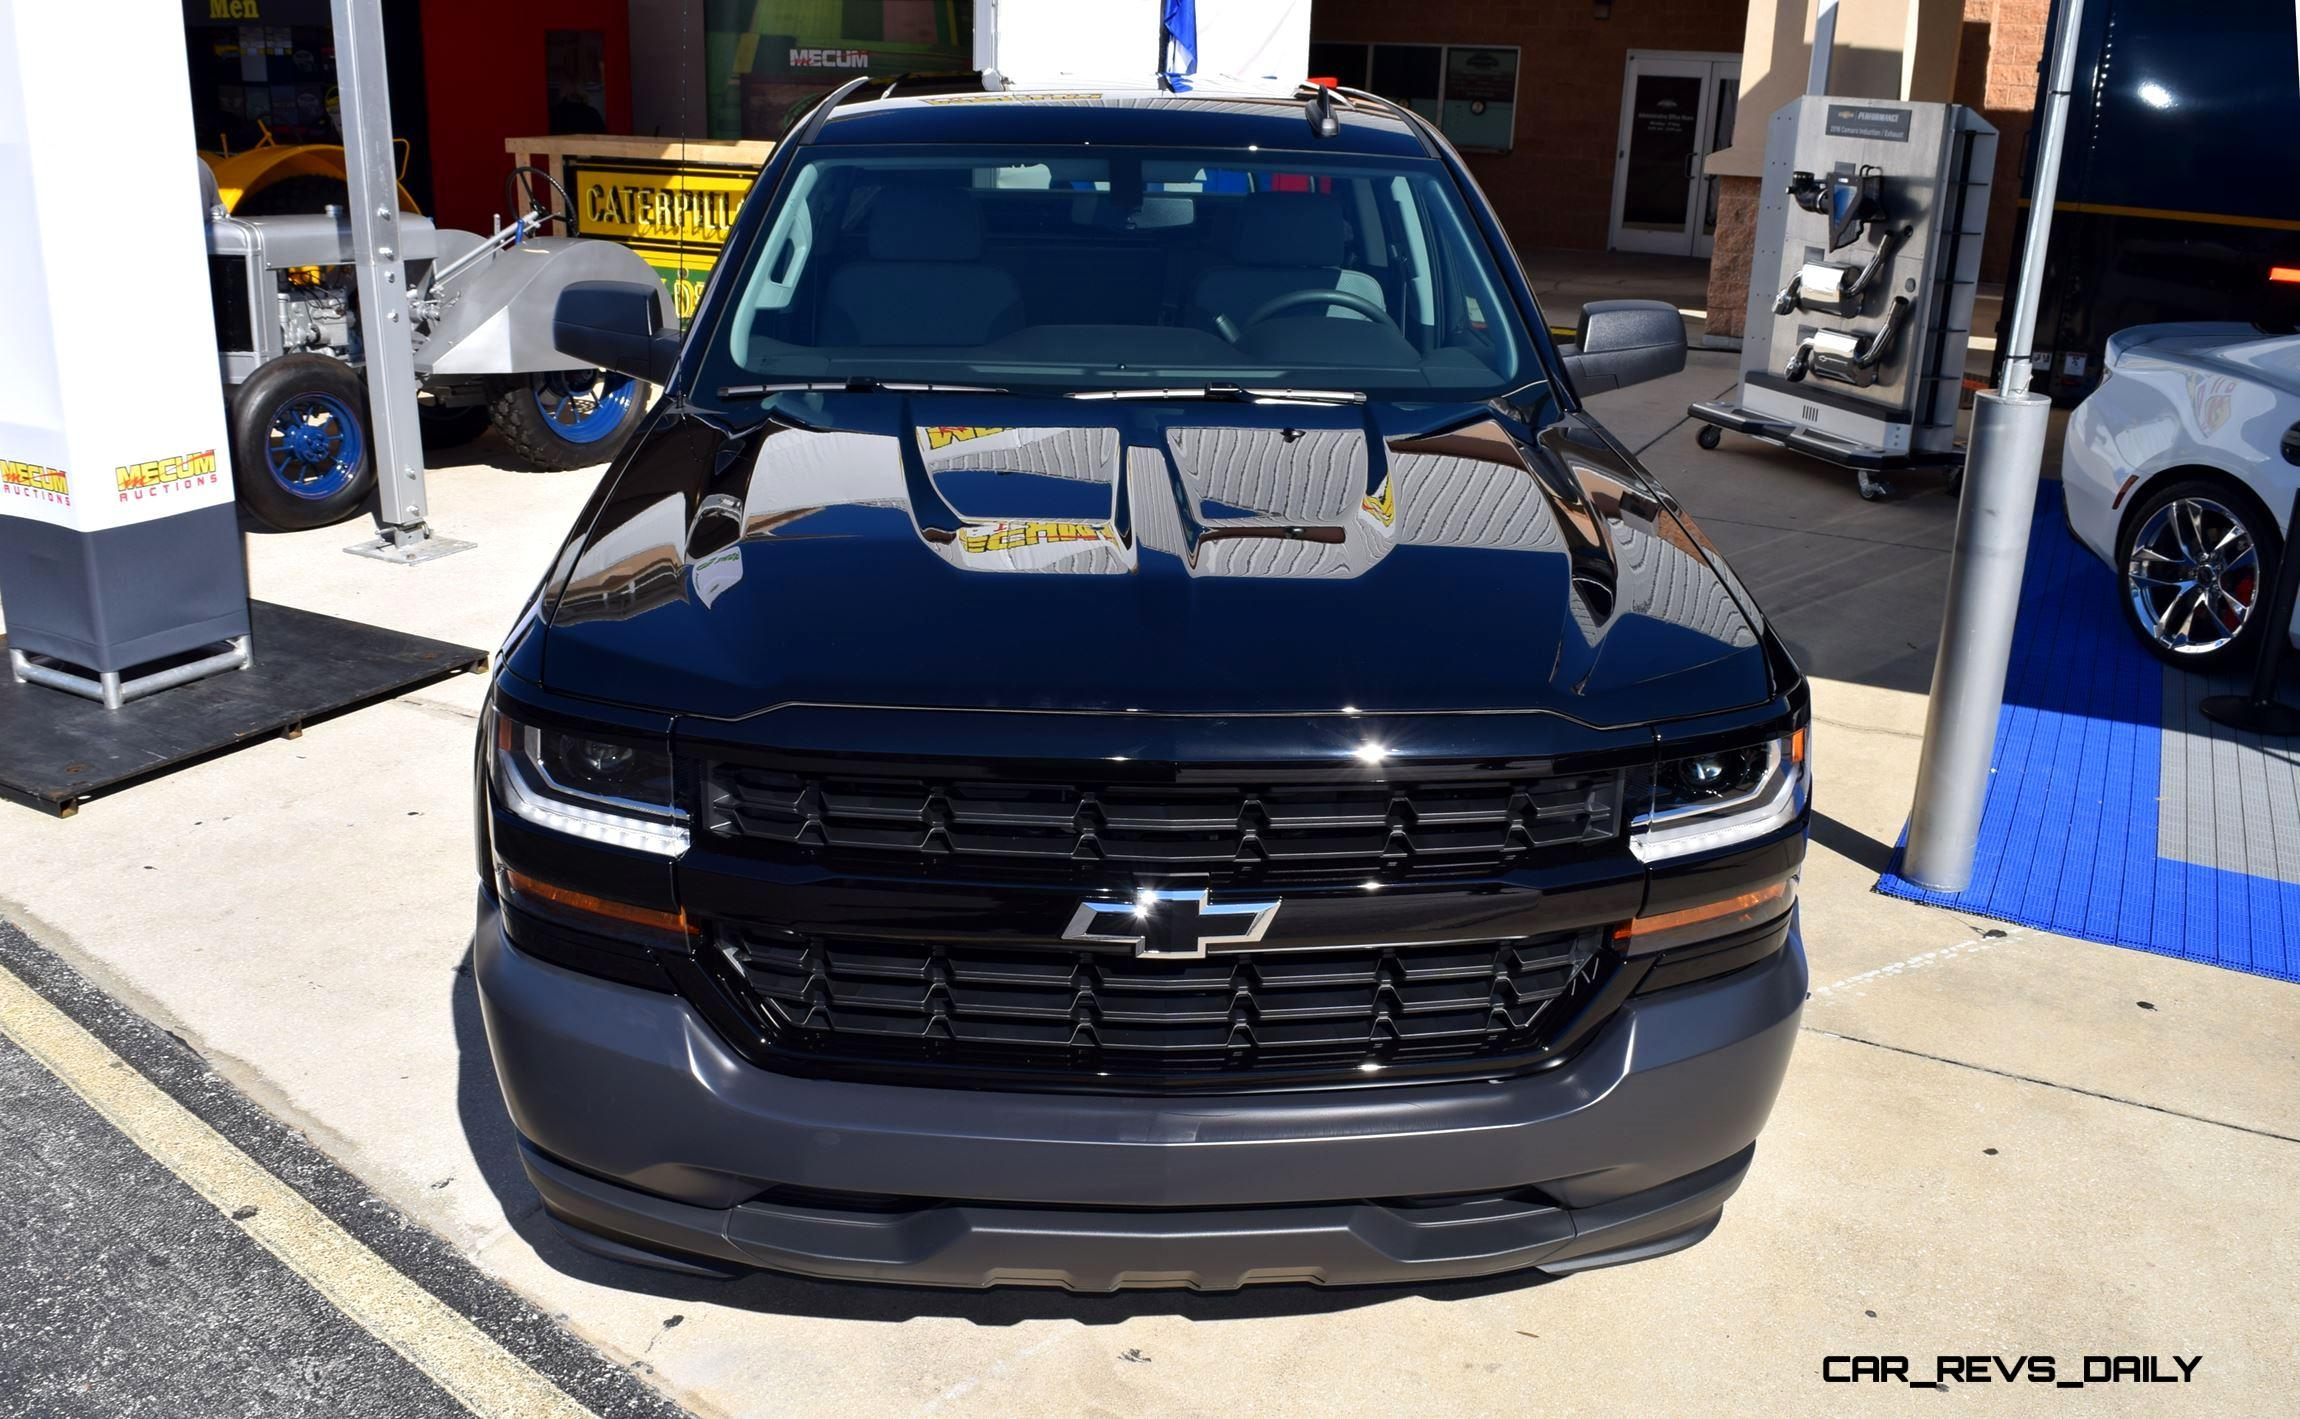 2017 Chevy Silverado Colors >> 2016 Chevrolet SILVERADO 1500 Black Out Edition 14